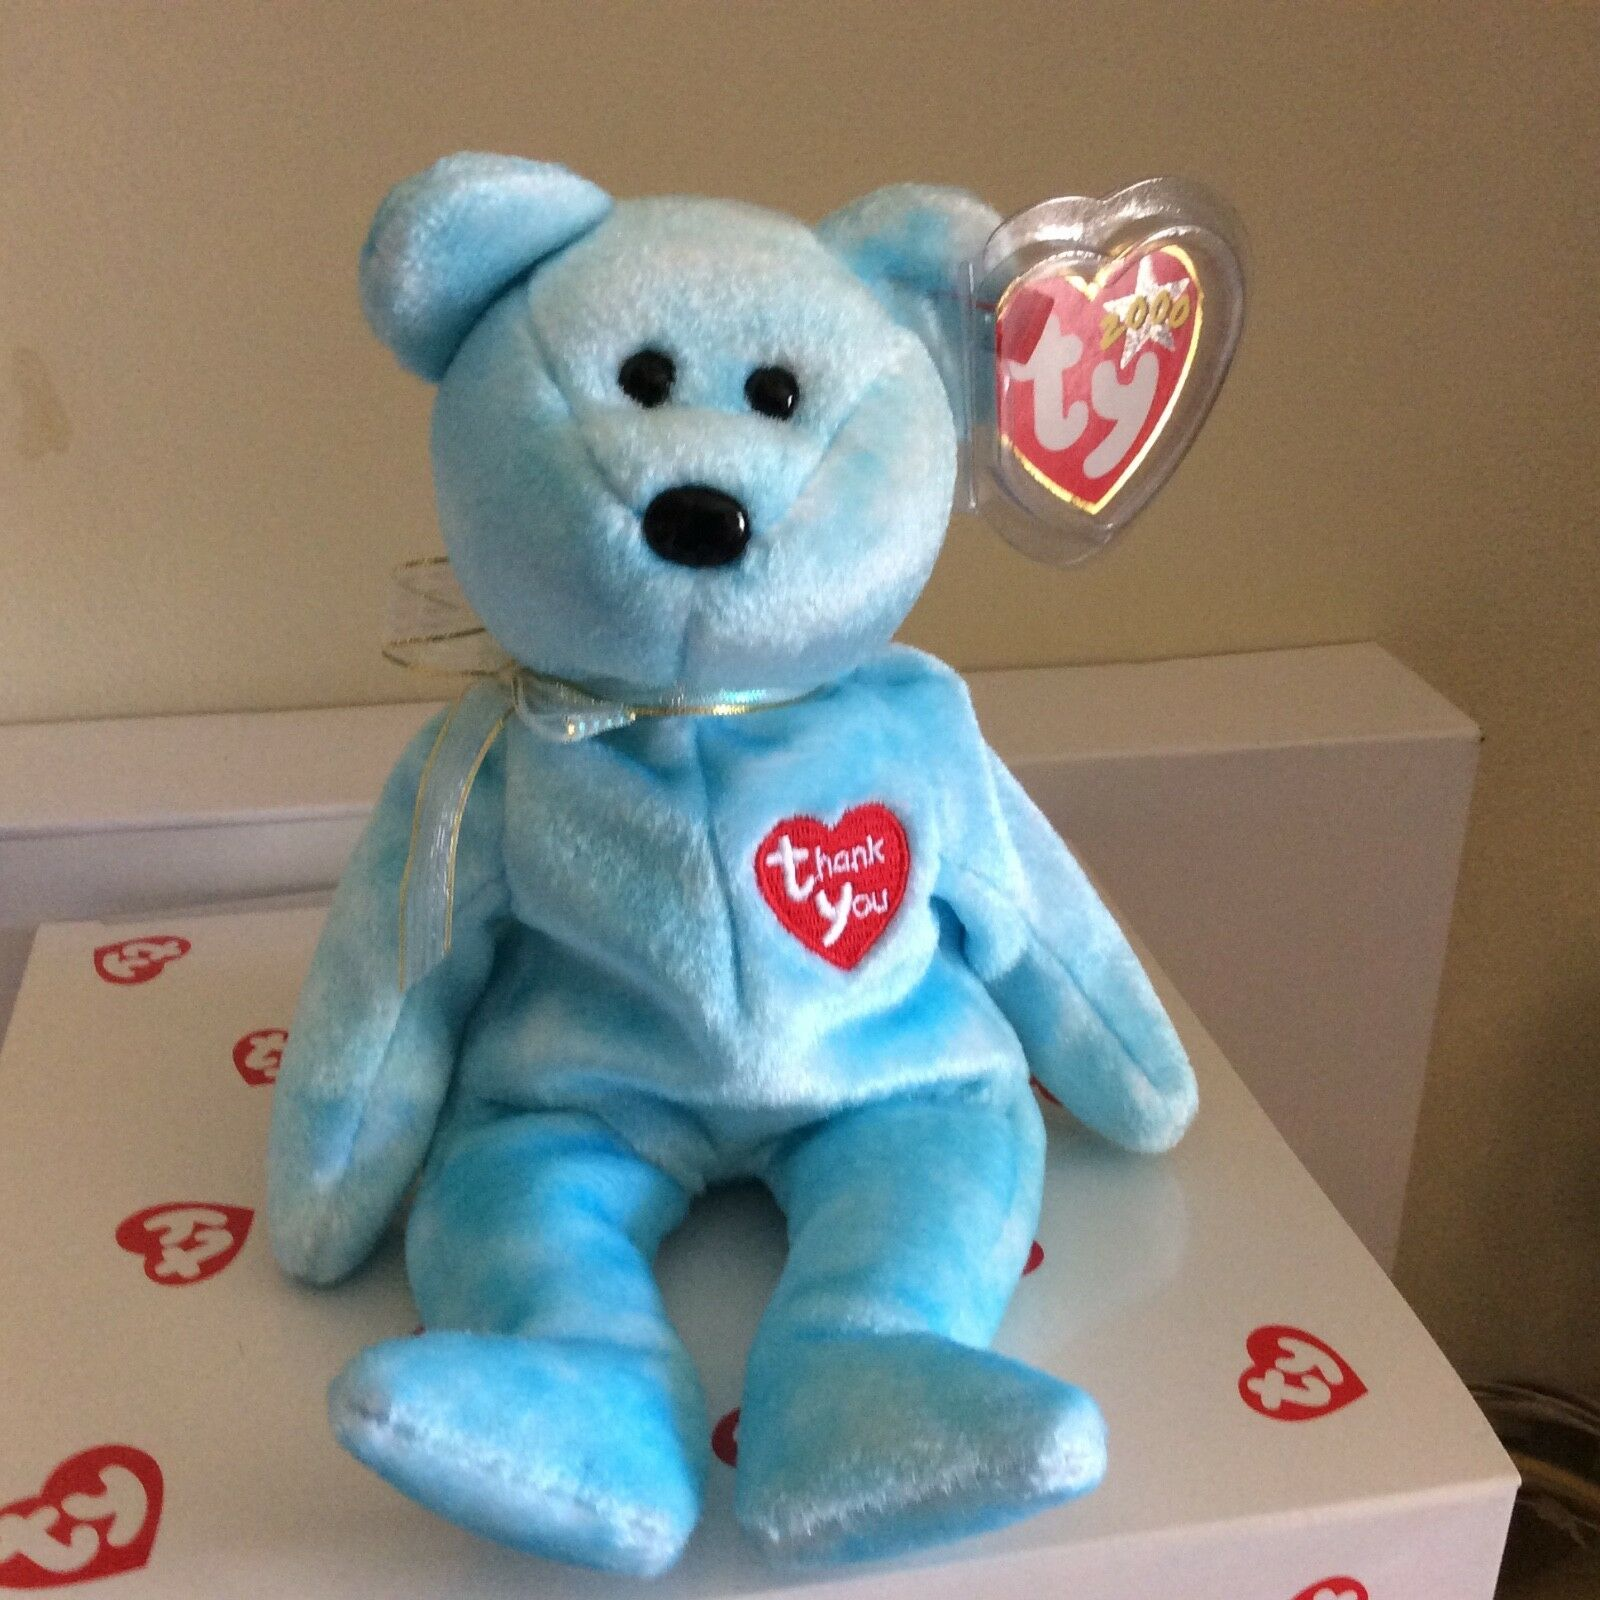 Ty Beanie Baby Baby Baby THANK YOU the Bear 2000 Retailer Exclusive MWMT 050c80